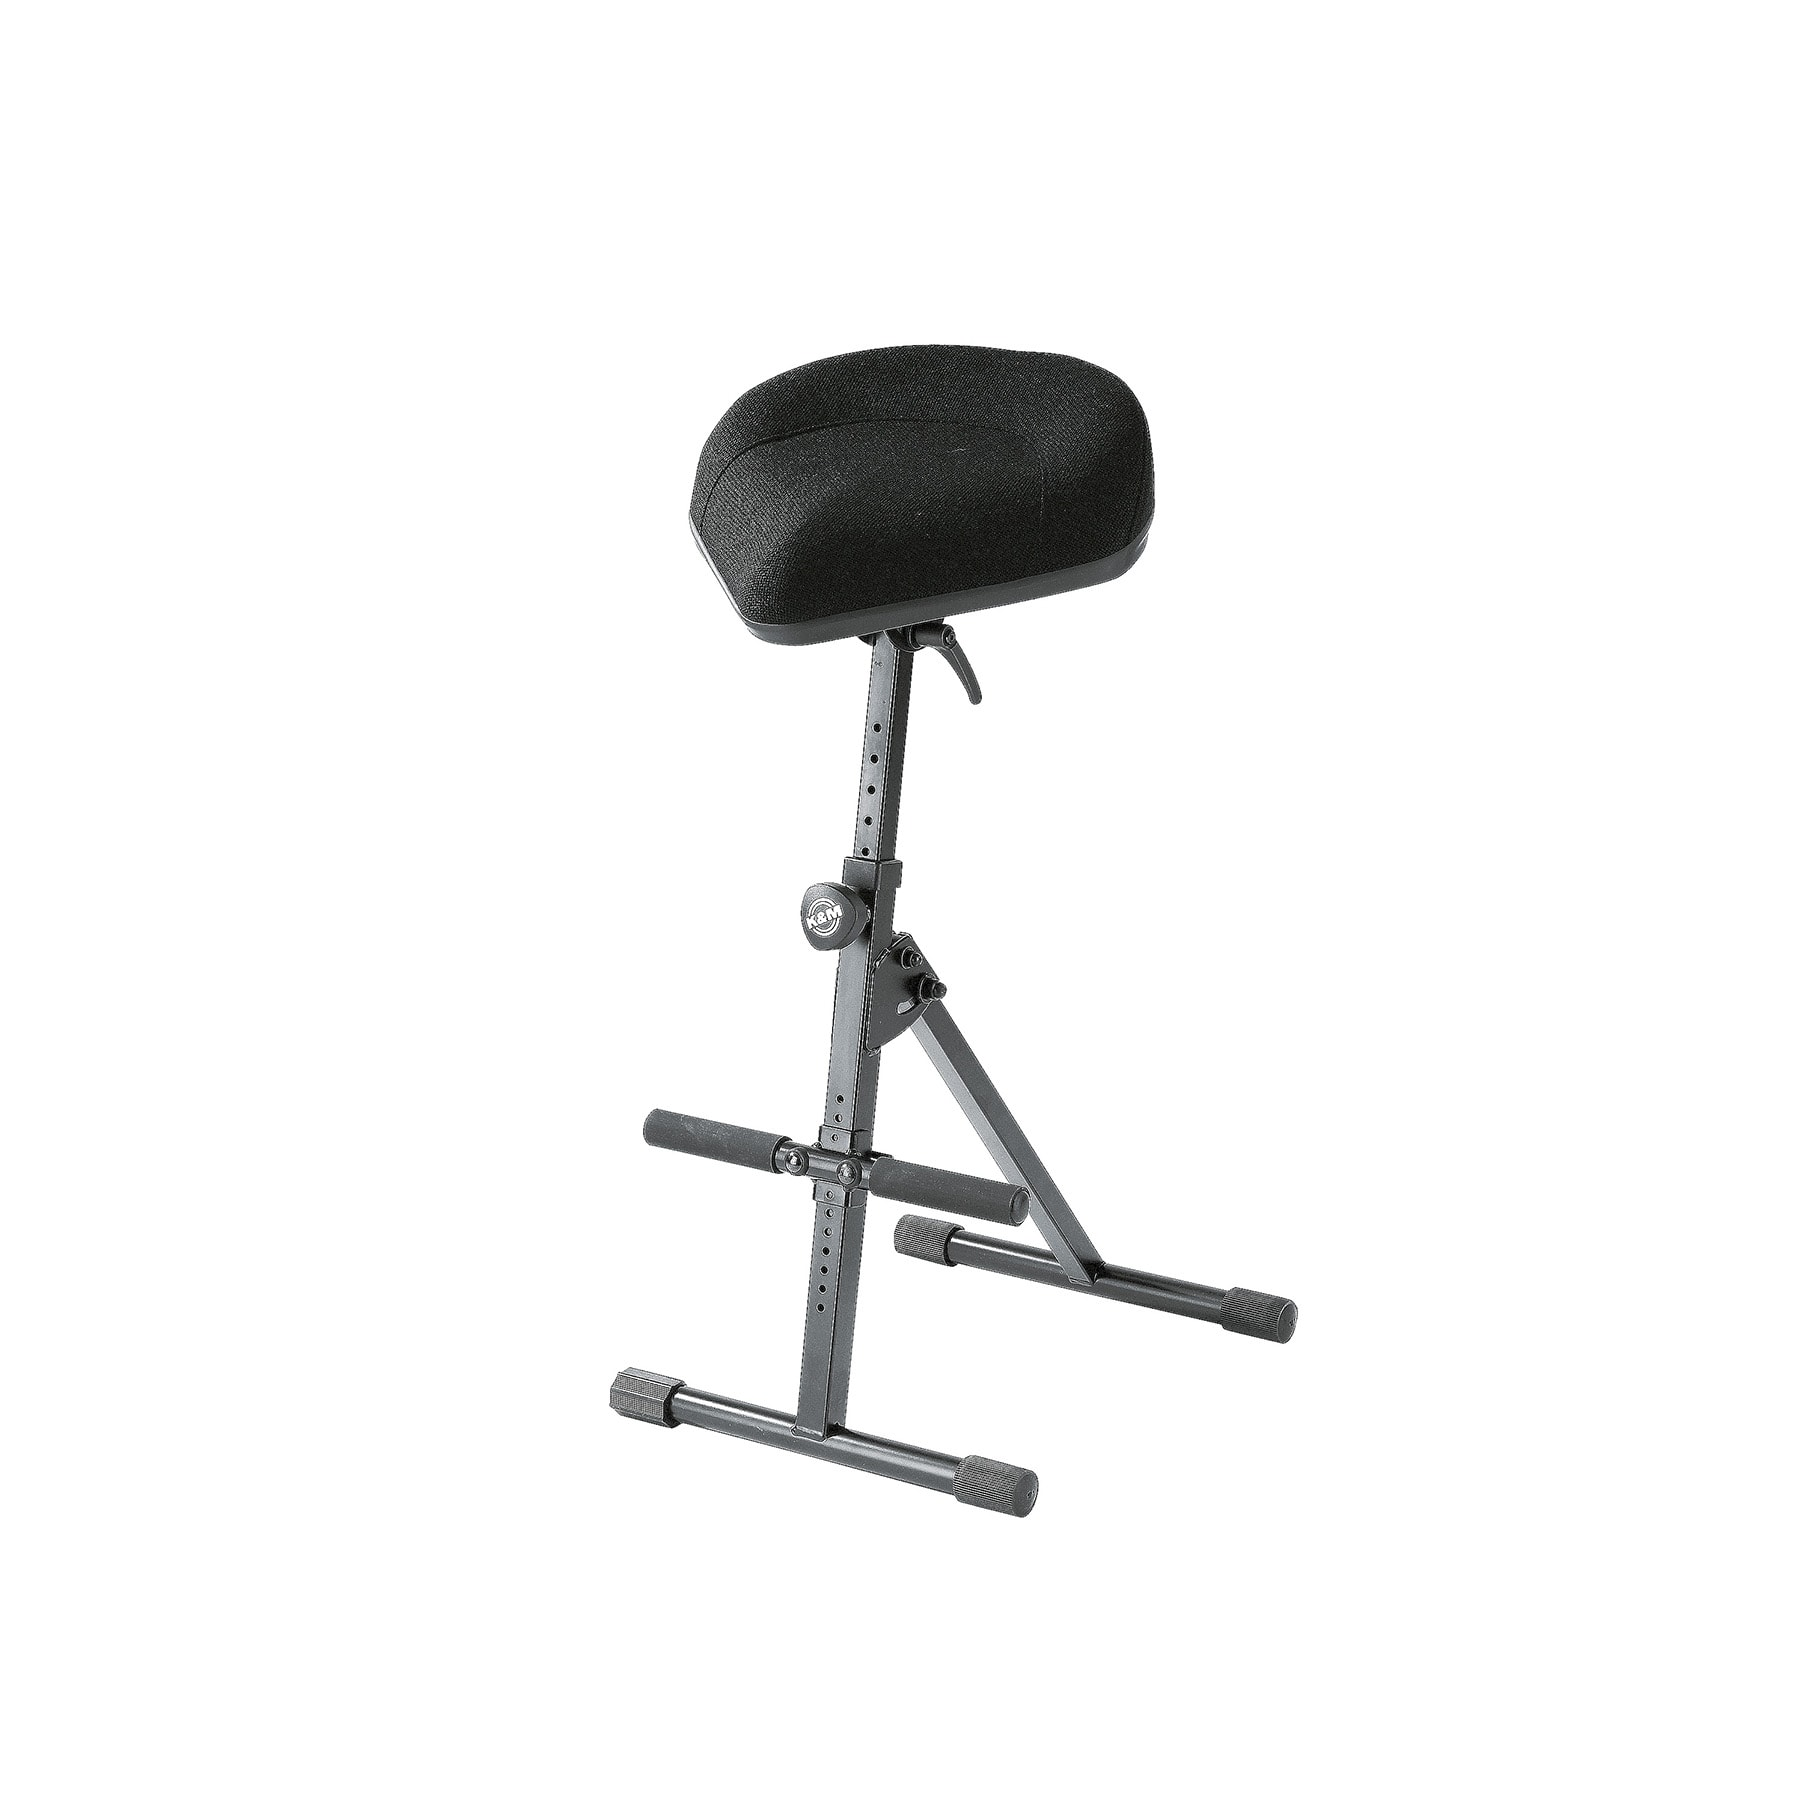 KM14046 - Pneumatic stool